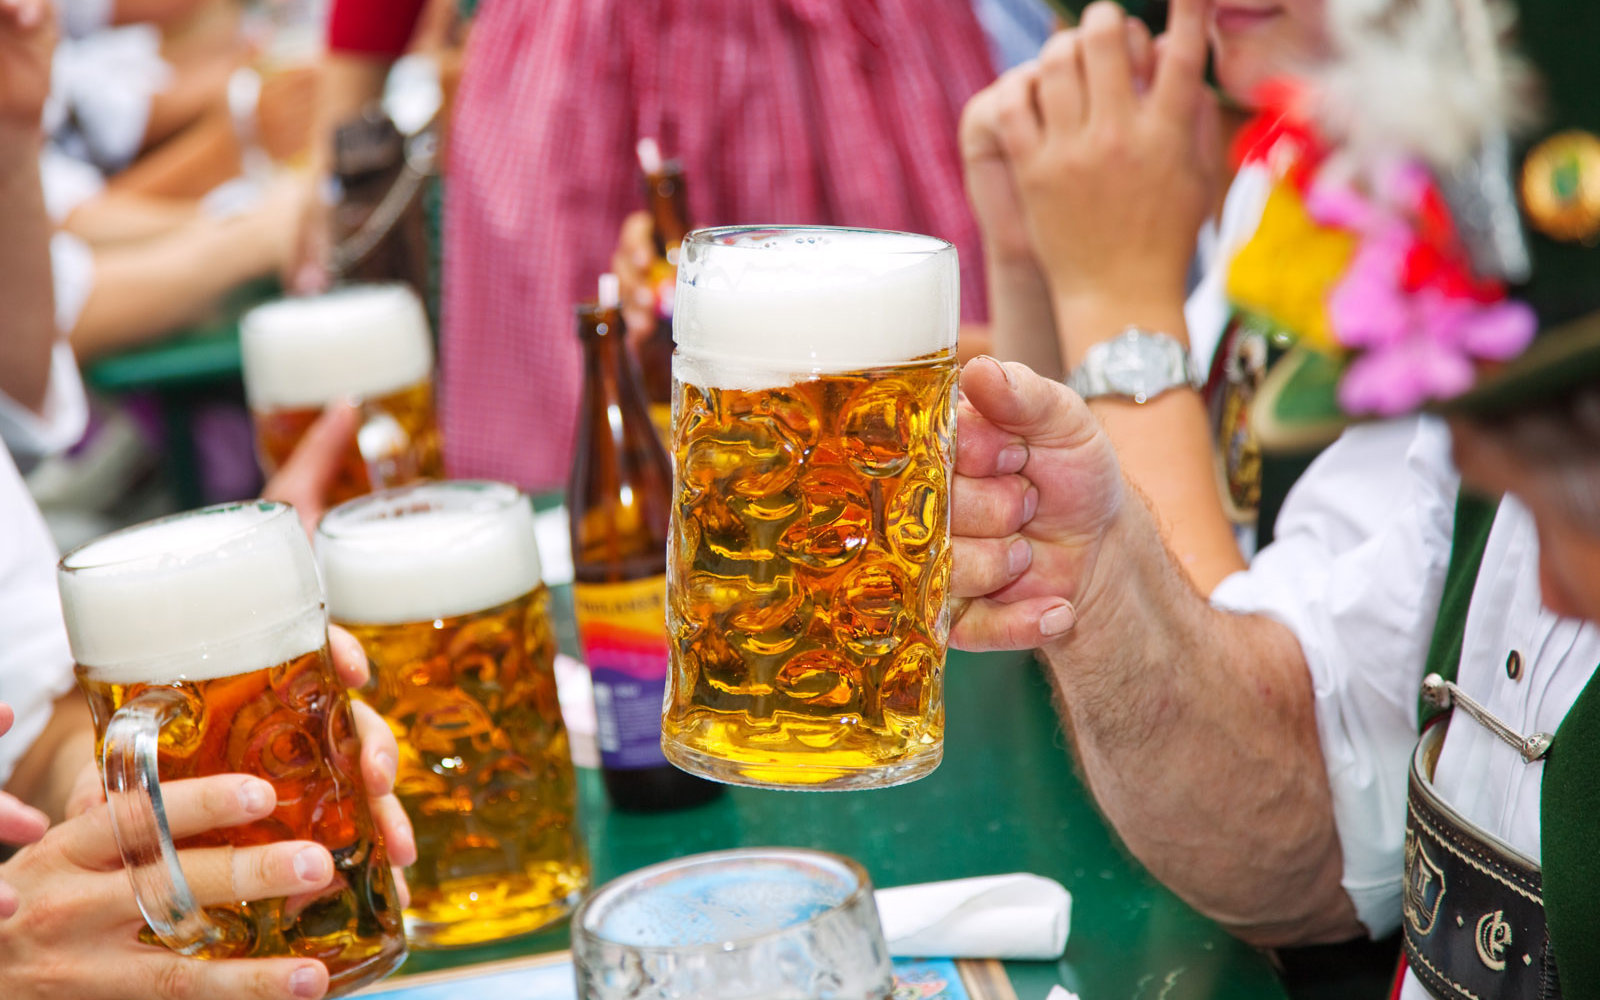 Oktoberfest attendees attempted to steal almost 100,000 beer steins this year